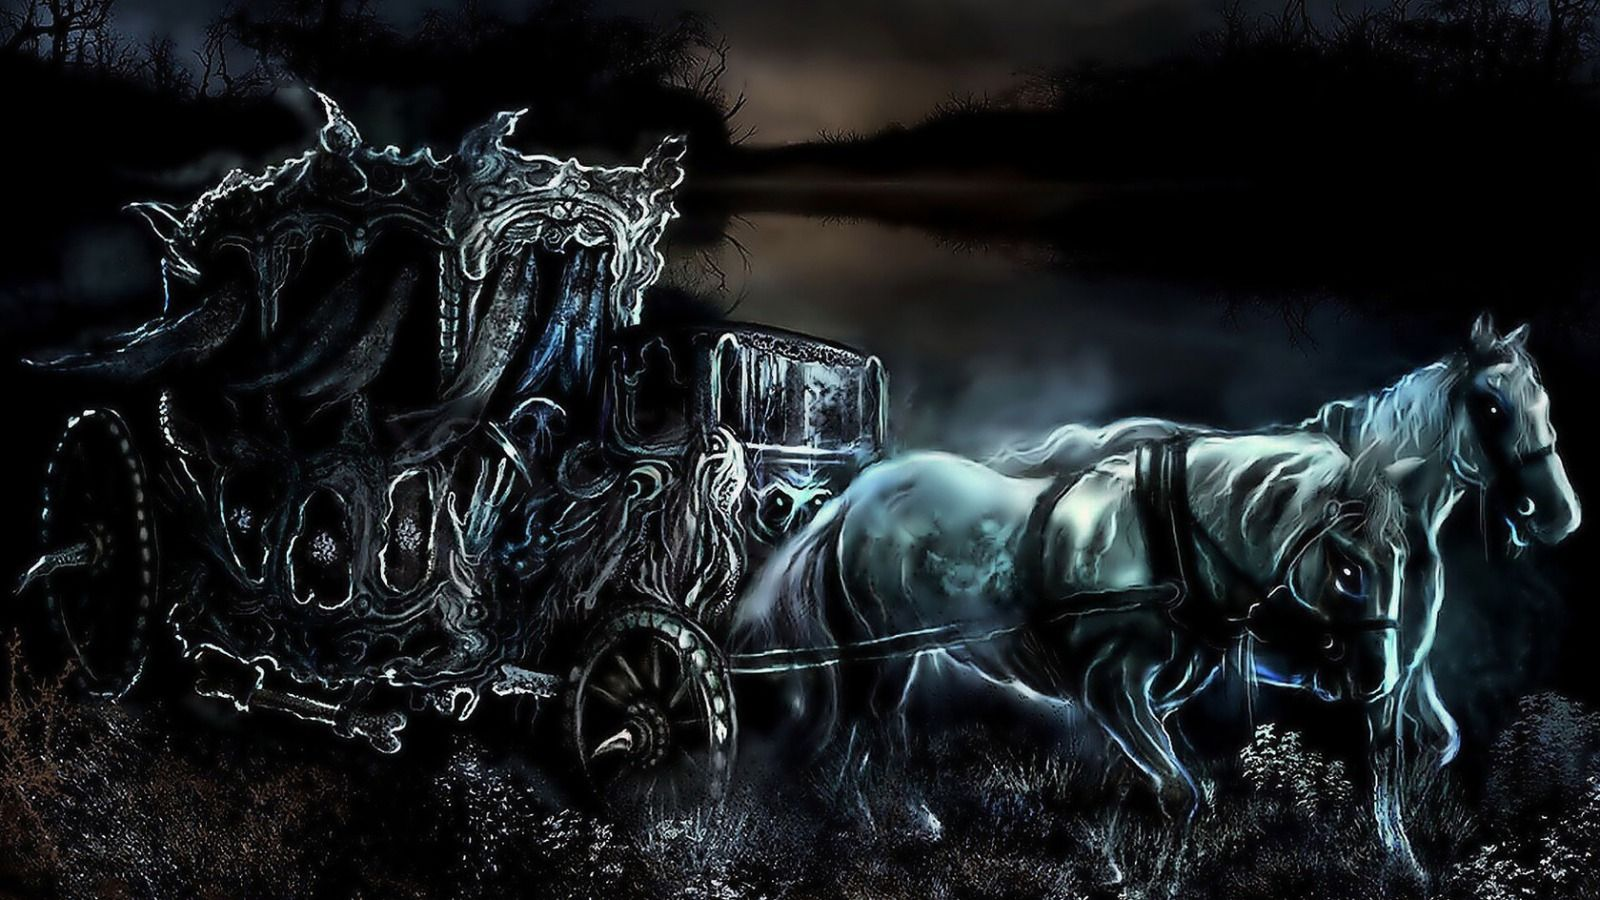 Good Wallpaper Horse Halloween - b9b6c58ef60e4f89fdadf83bc2e24aca  Picture_1002419.jpg